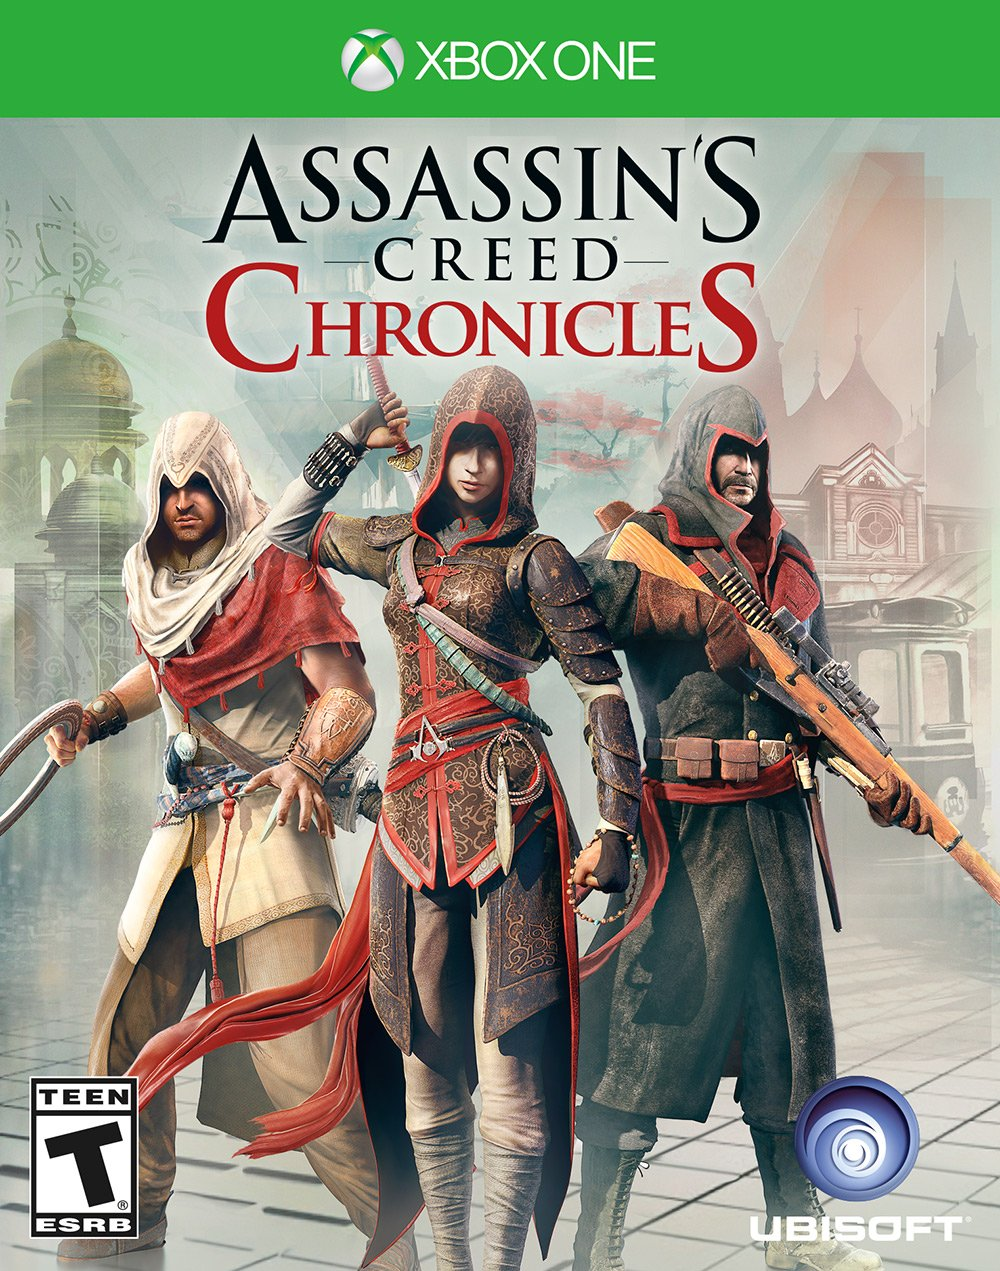 Assassin's creed release date